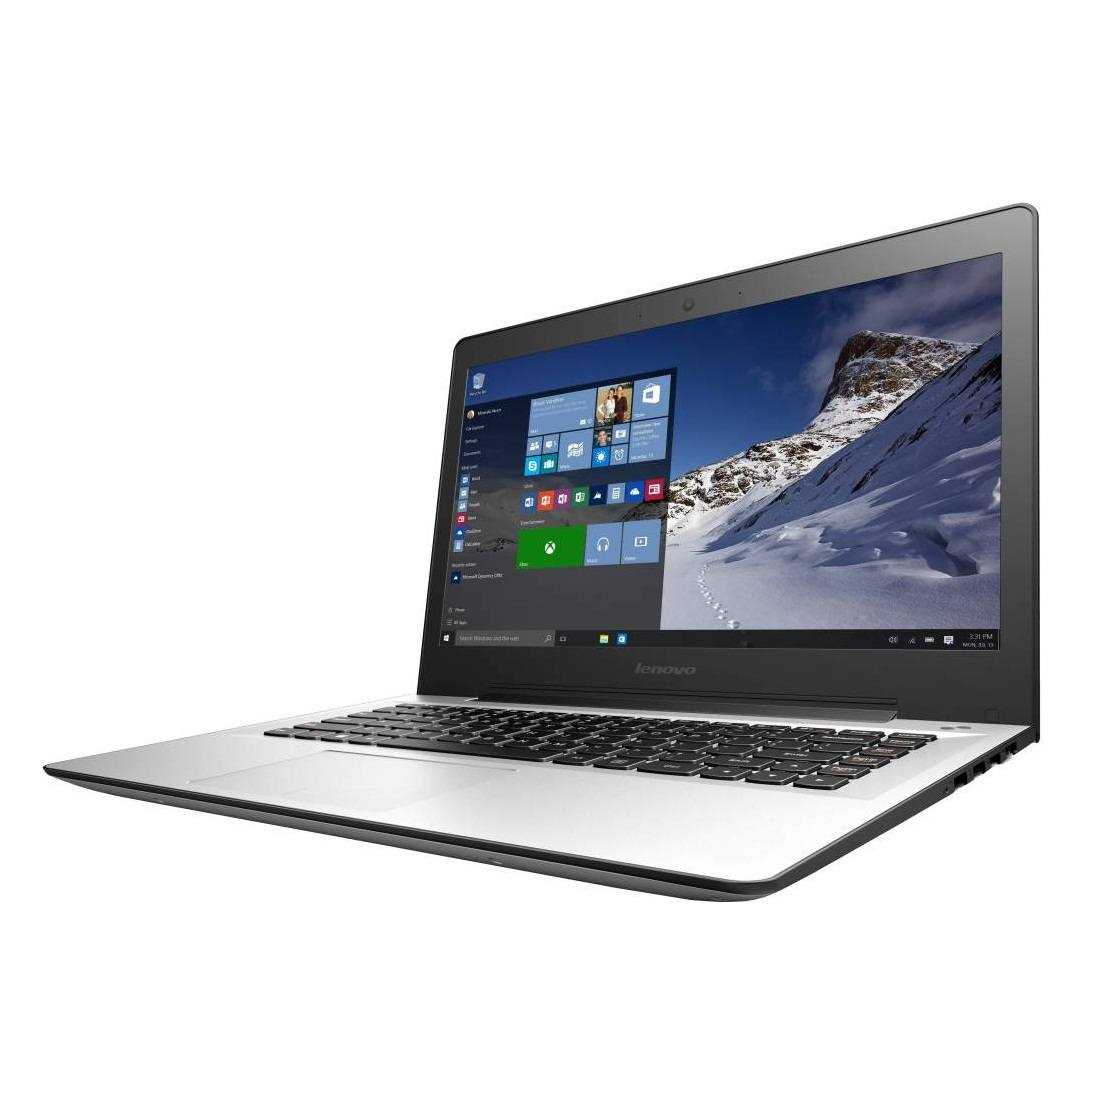 Lenovo Ideapad 500S-14ISK (80Q30056IN) Notebook